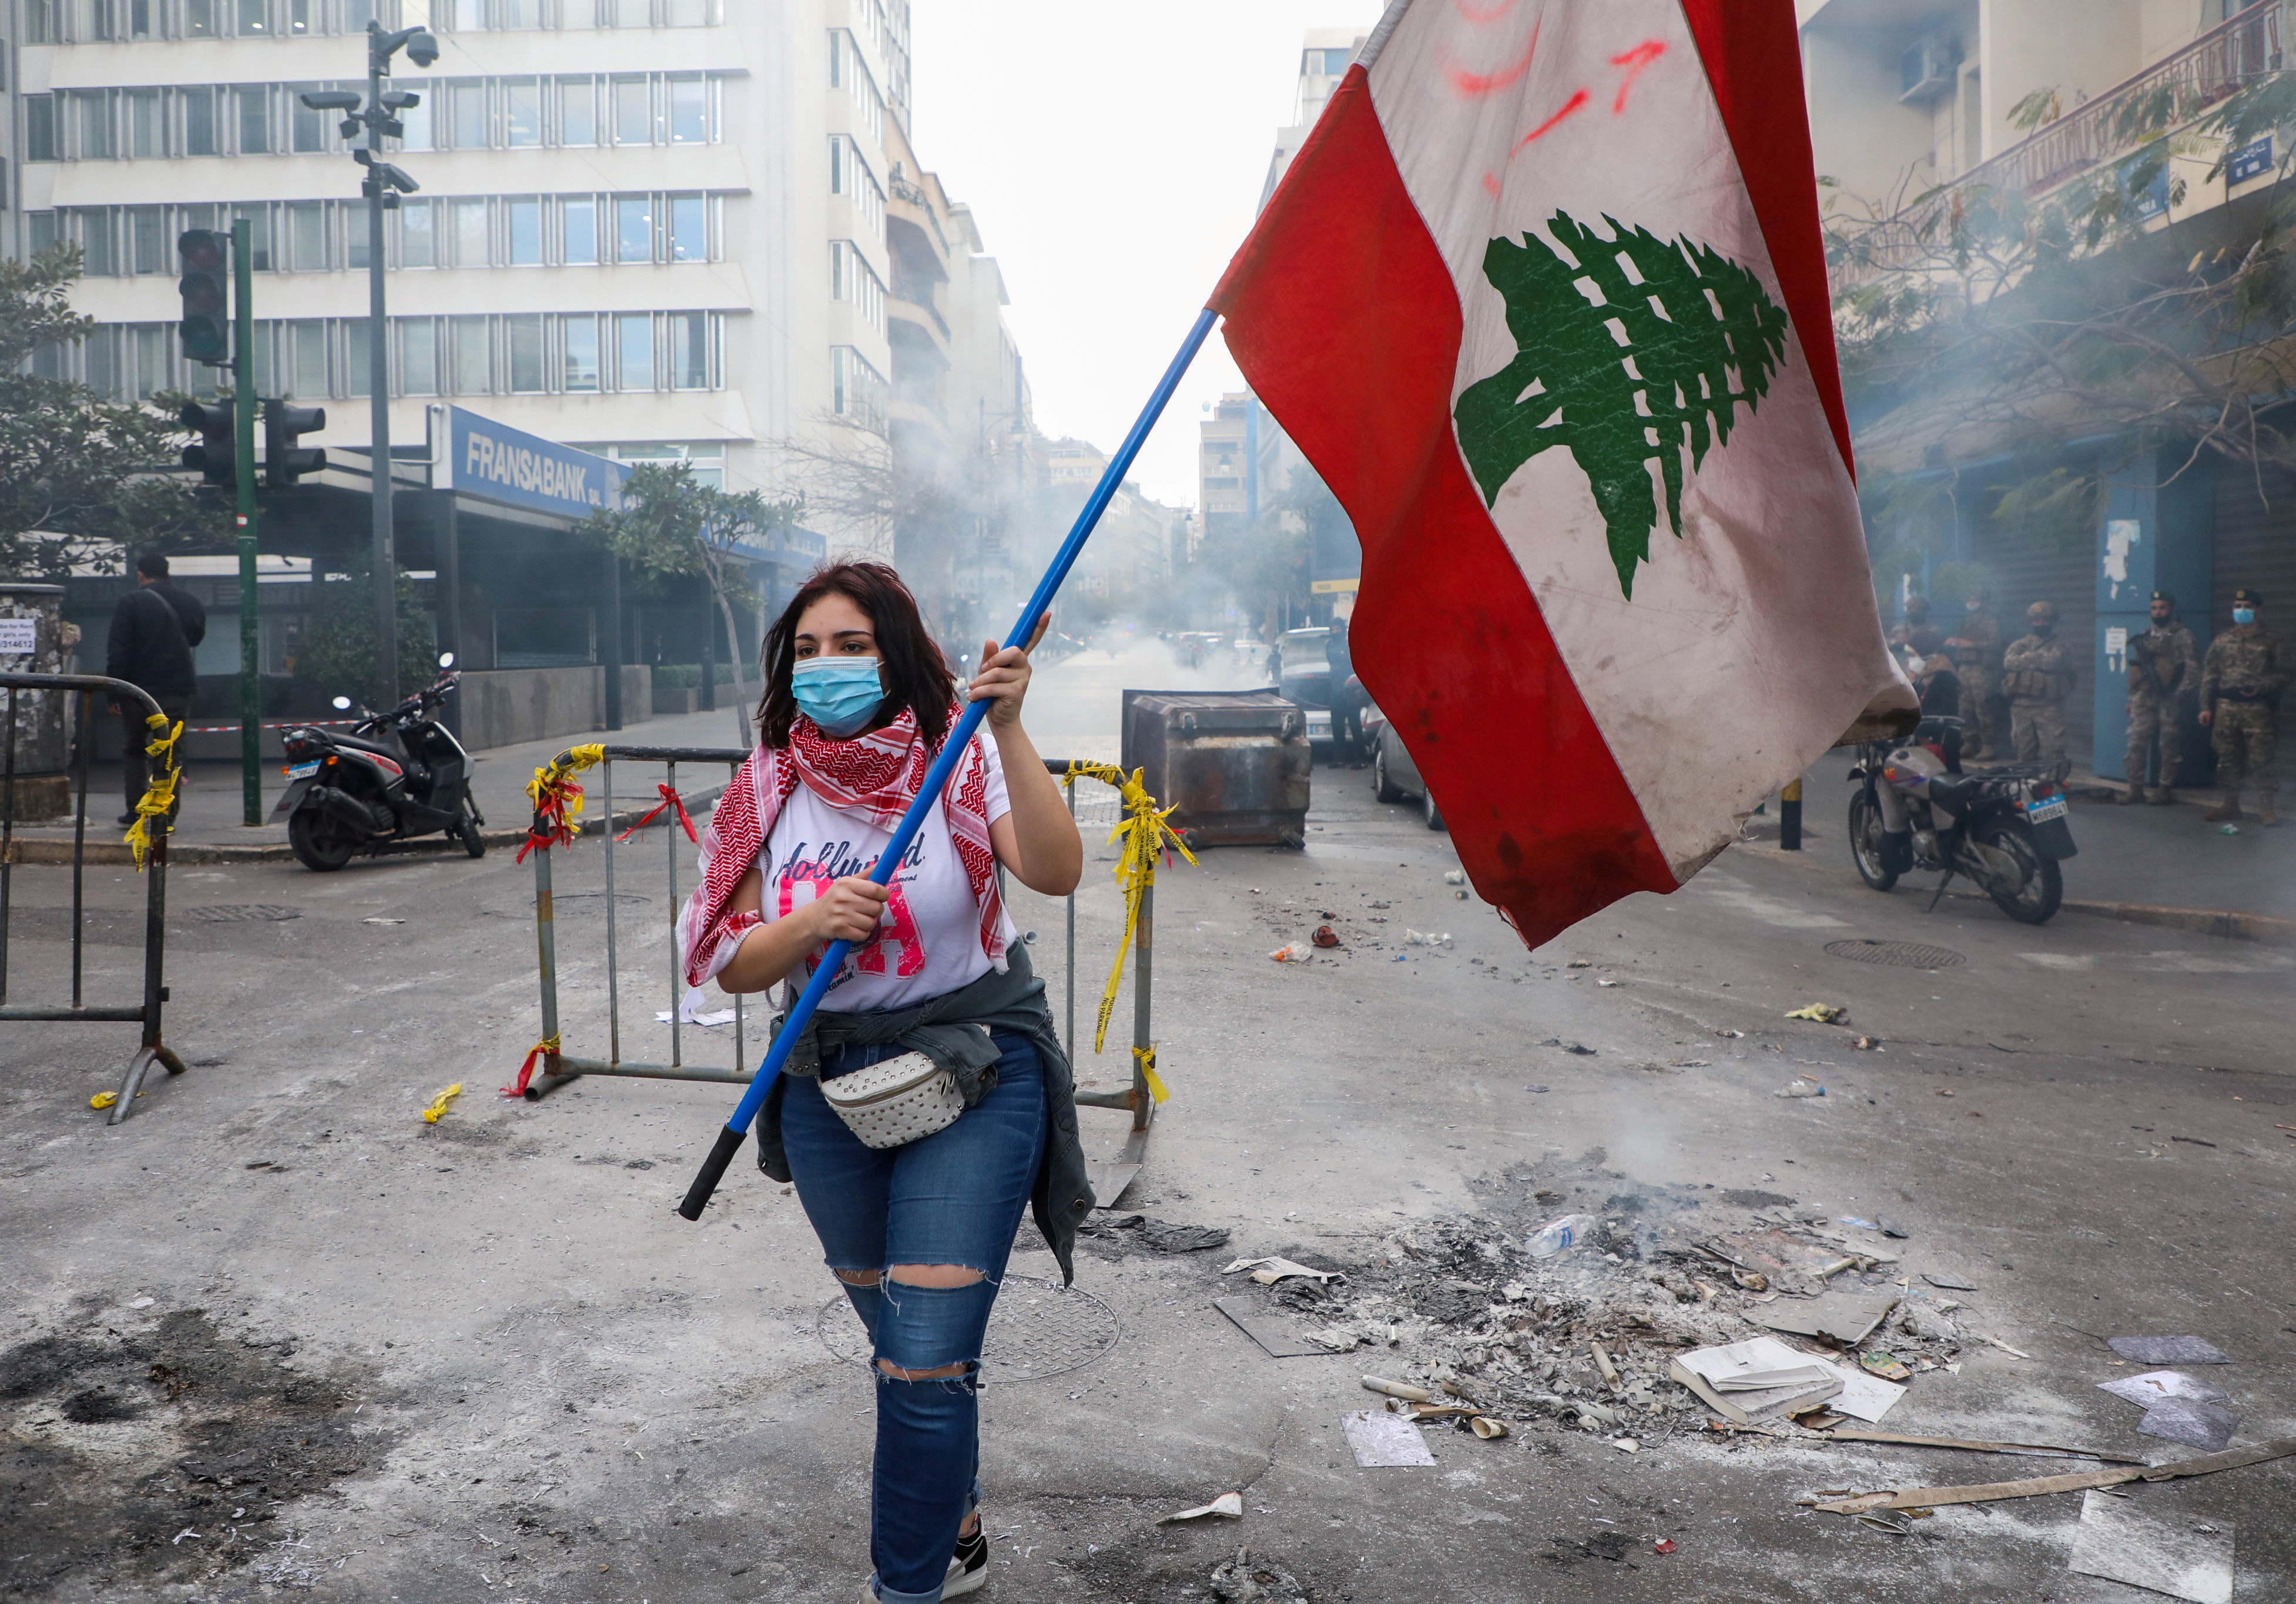 A demonstrator carries a national flag along a blocked road, during a protest against the fall in Lebanese pound currency and mounting economic hardships, near the Central Bank building, in Beirut, Lebanon March 16, 2021. REUTERS/Mohamed Azakir